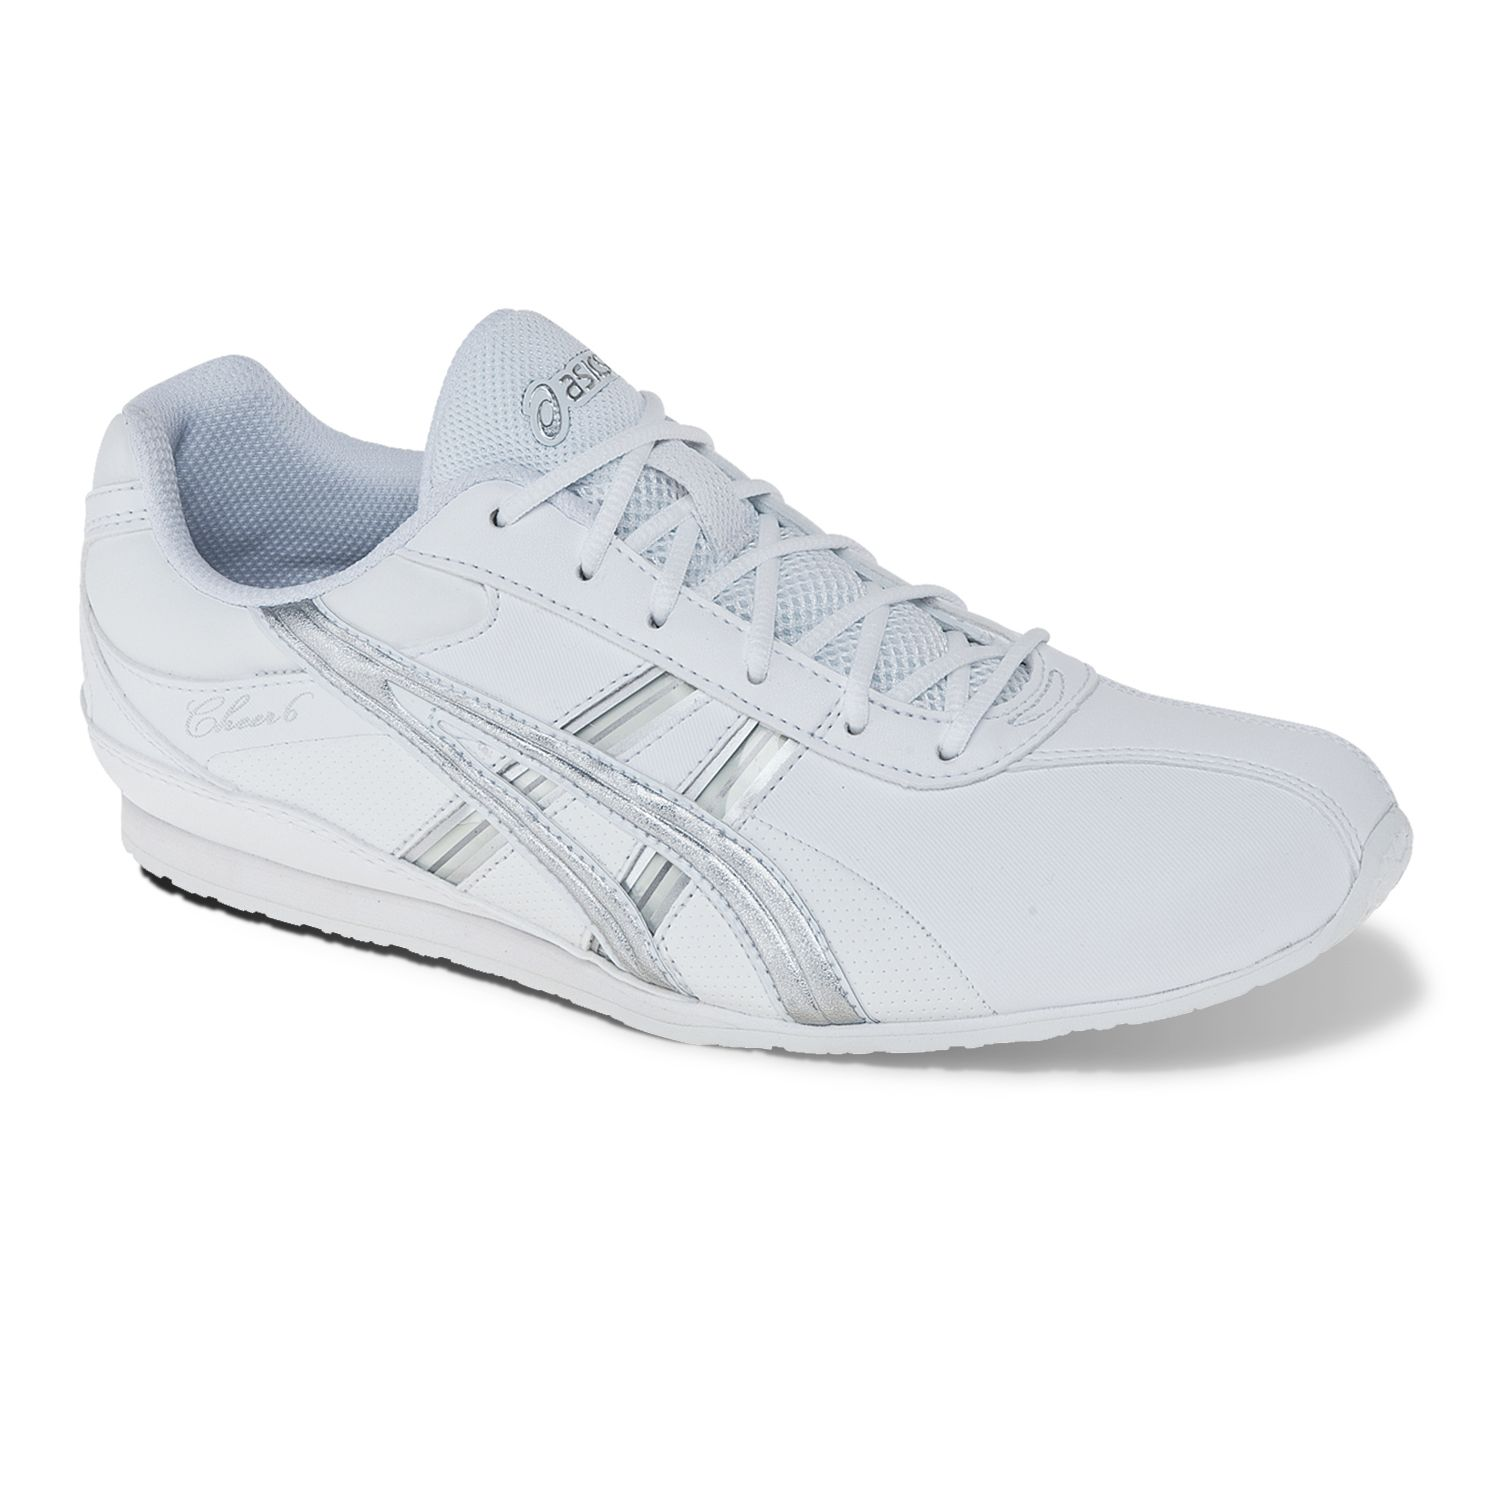 Uzmrctgt Outlet Asics Toddler Cheer Shoes